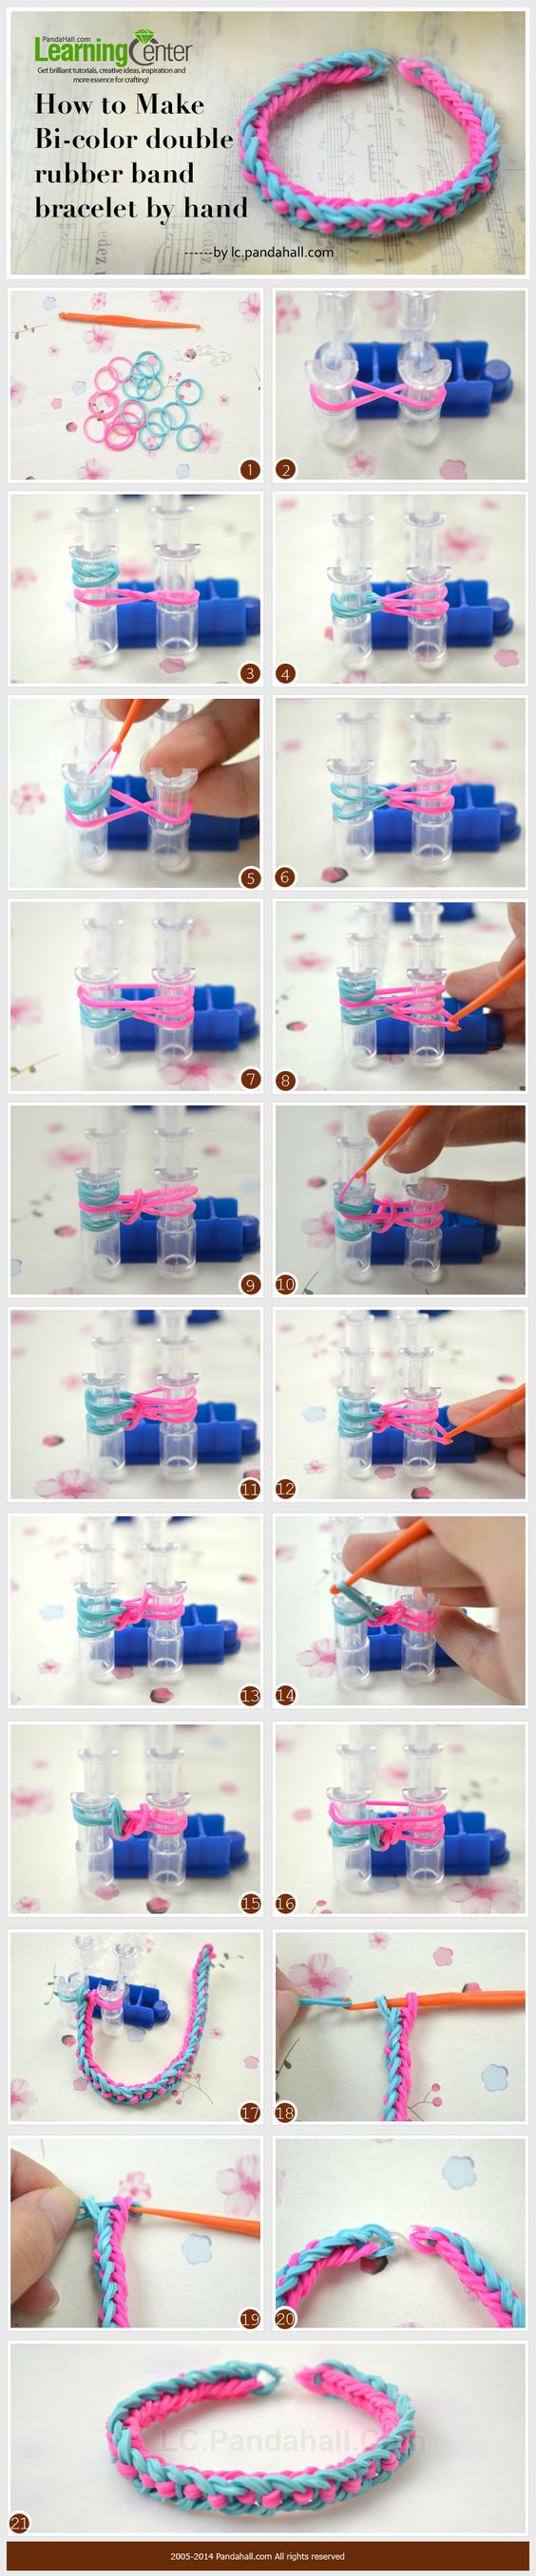 How to Make Bi-color Double Rubber Band Bracelet by Hand